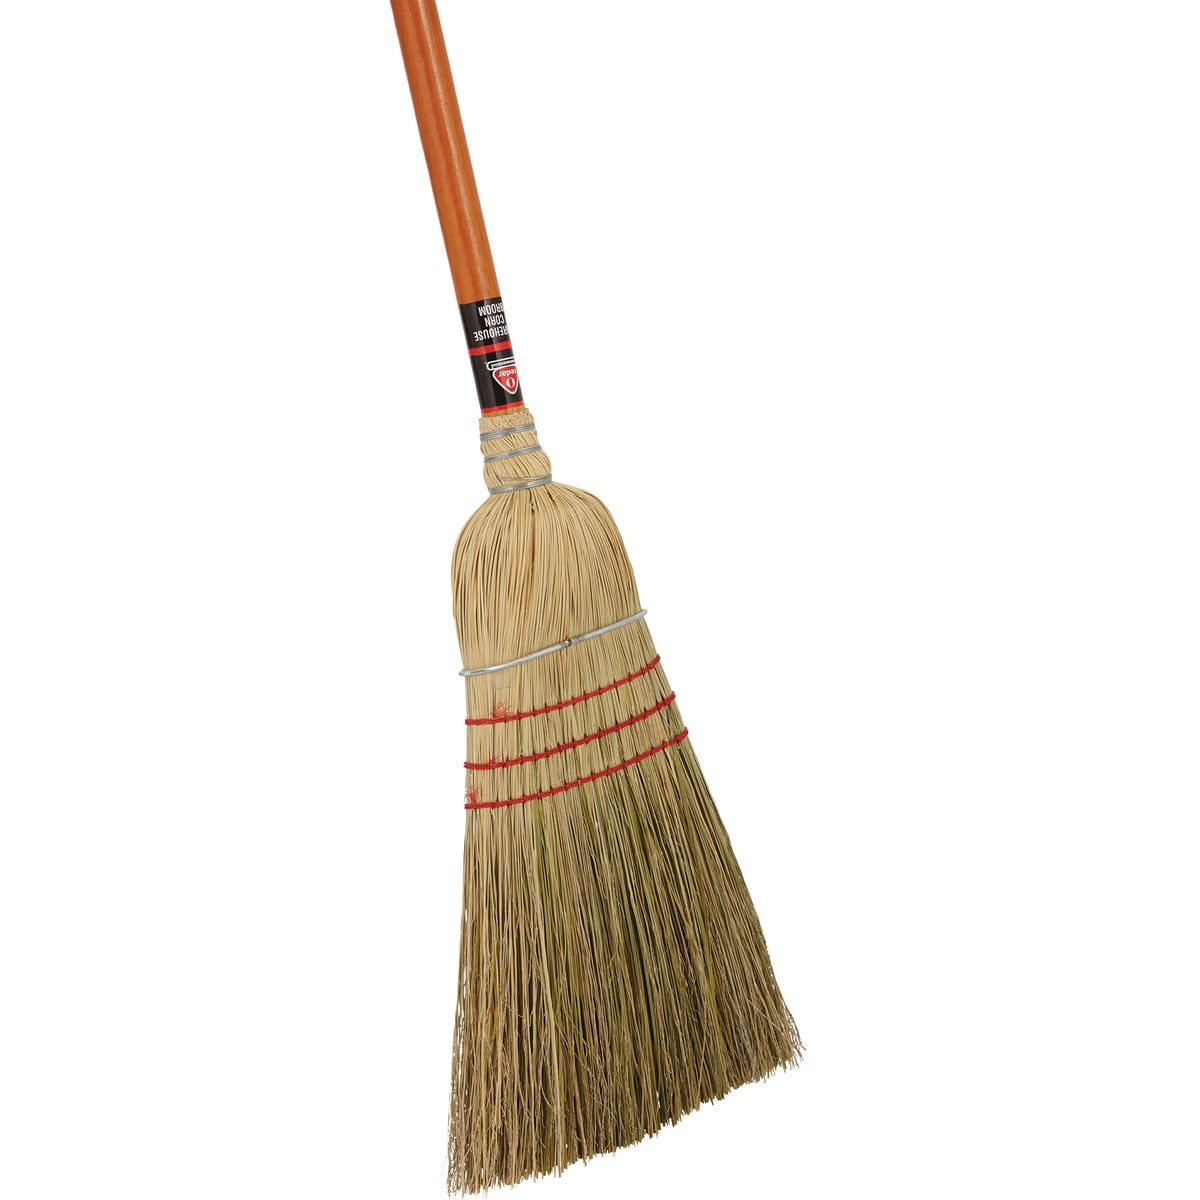 WAREHOUSE BROOM - 6120-6 by Nexstep Commercial